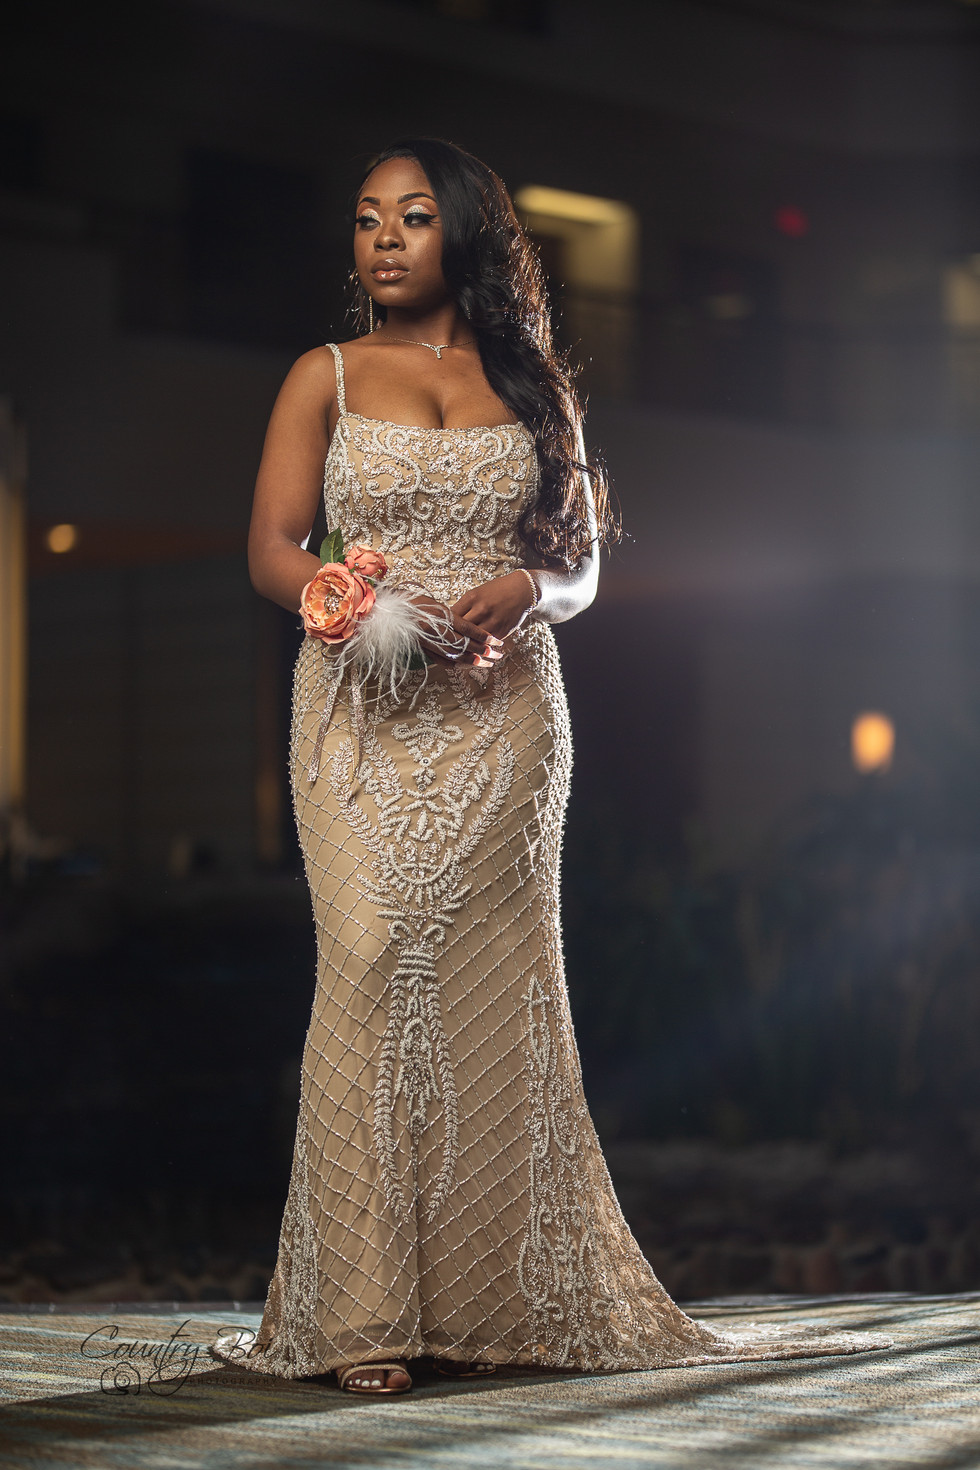 African american young woman in fancy cream Prom dress in Hiltion hotel Gaslamp San Diego CA Ridgecrest Countryboiphotography.com